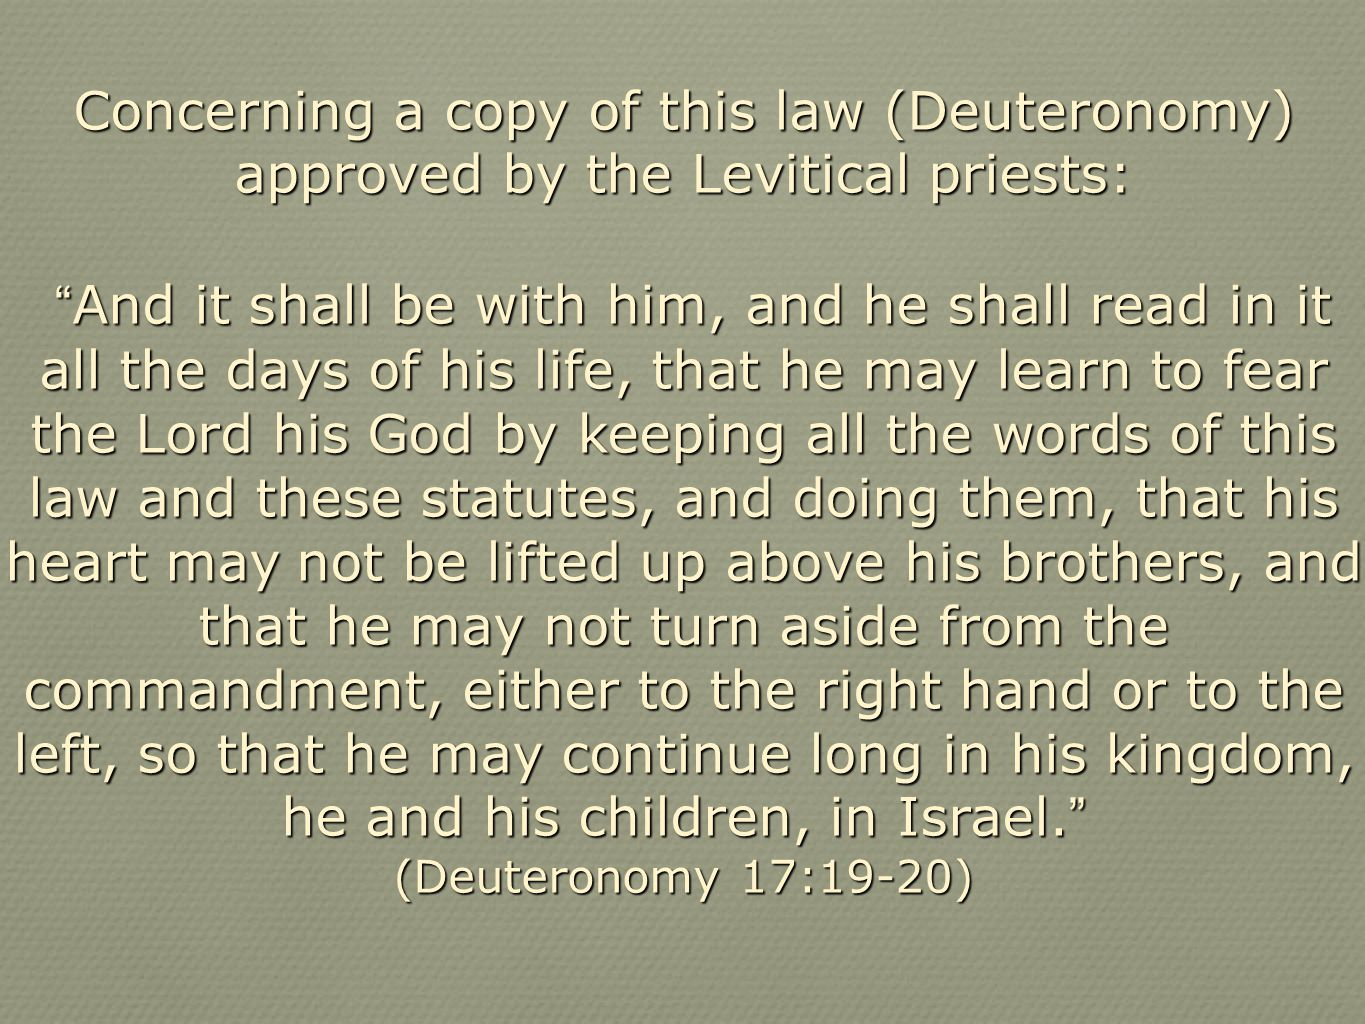 Concerning a copy of this law (Deuteronomy) approved by the Levitical priests: